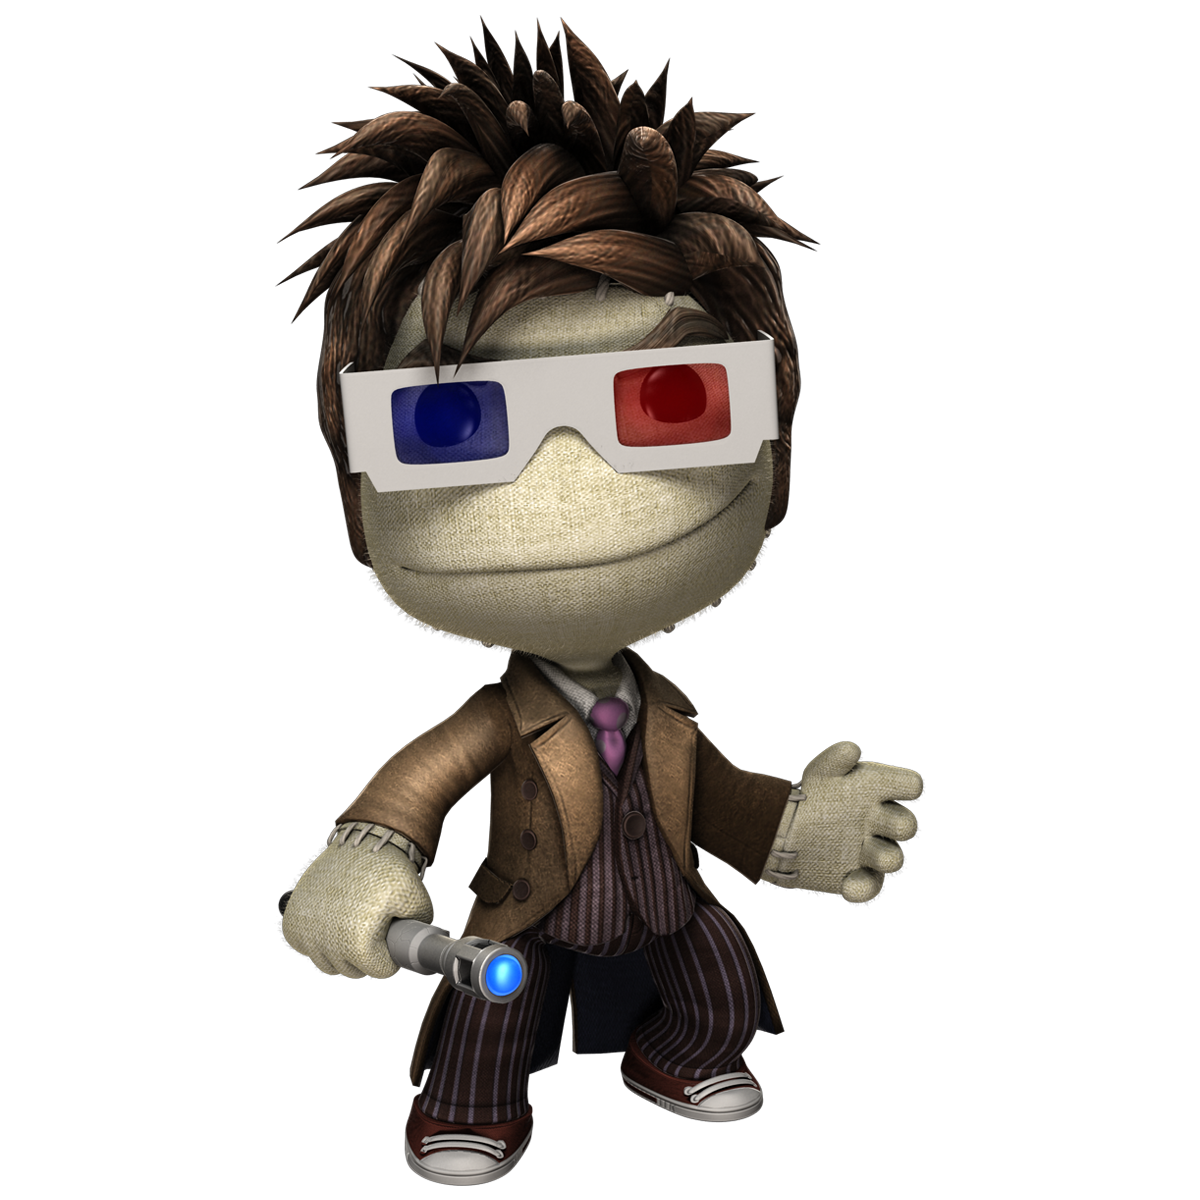 Doctor who is arriving. Sackboy drawing royalty free